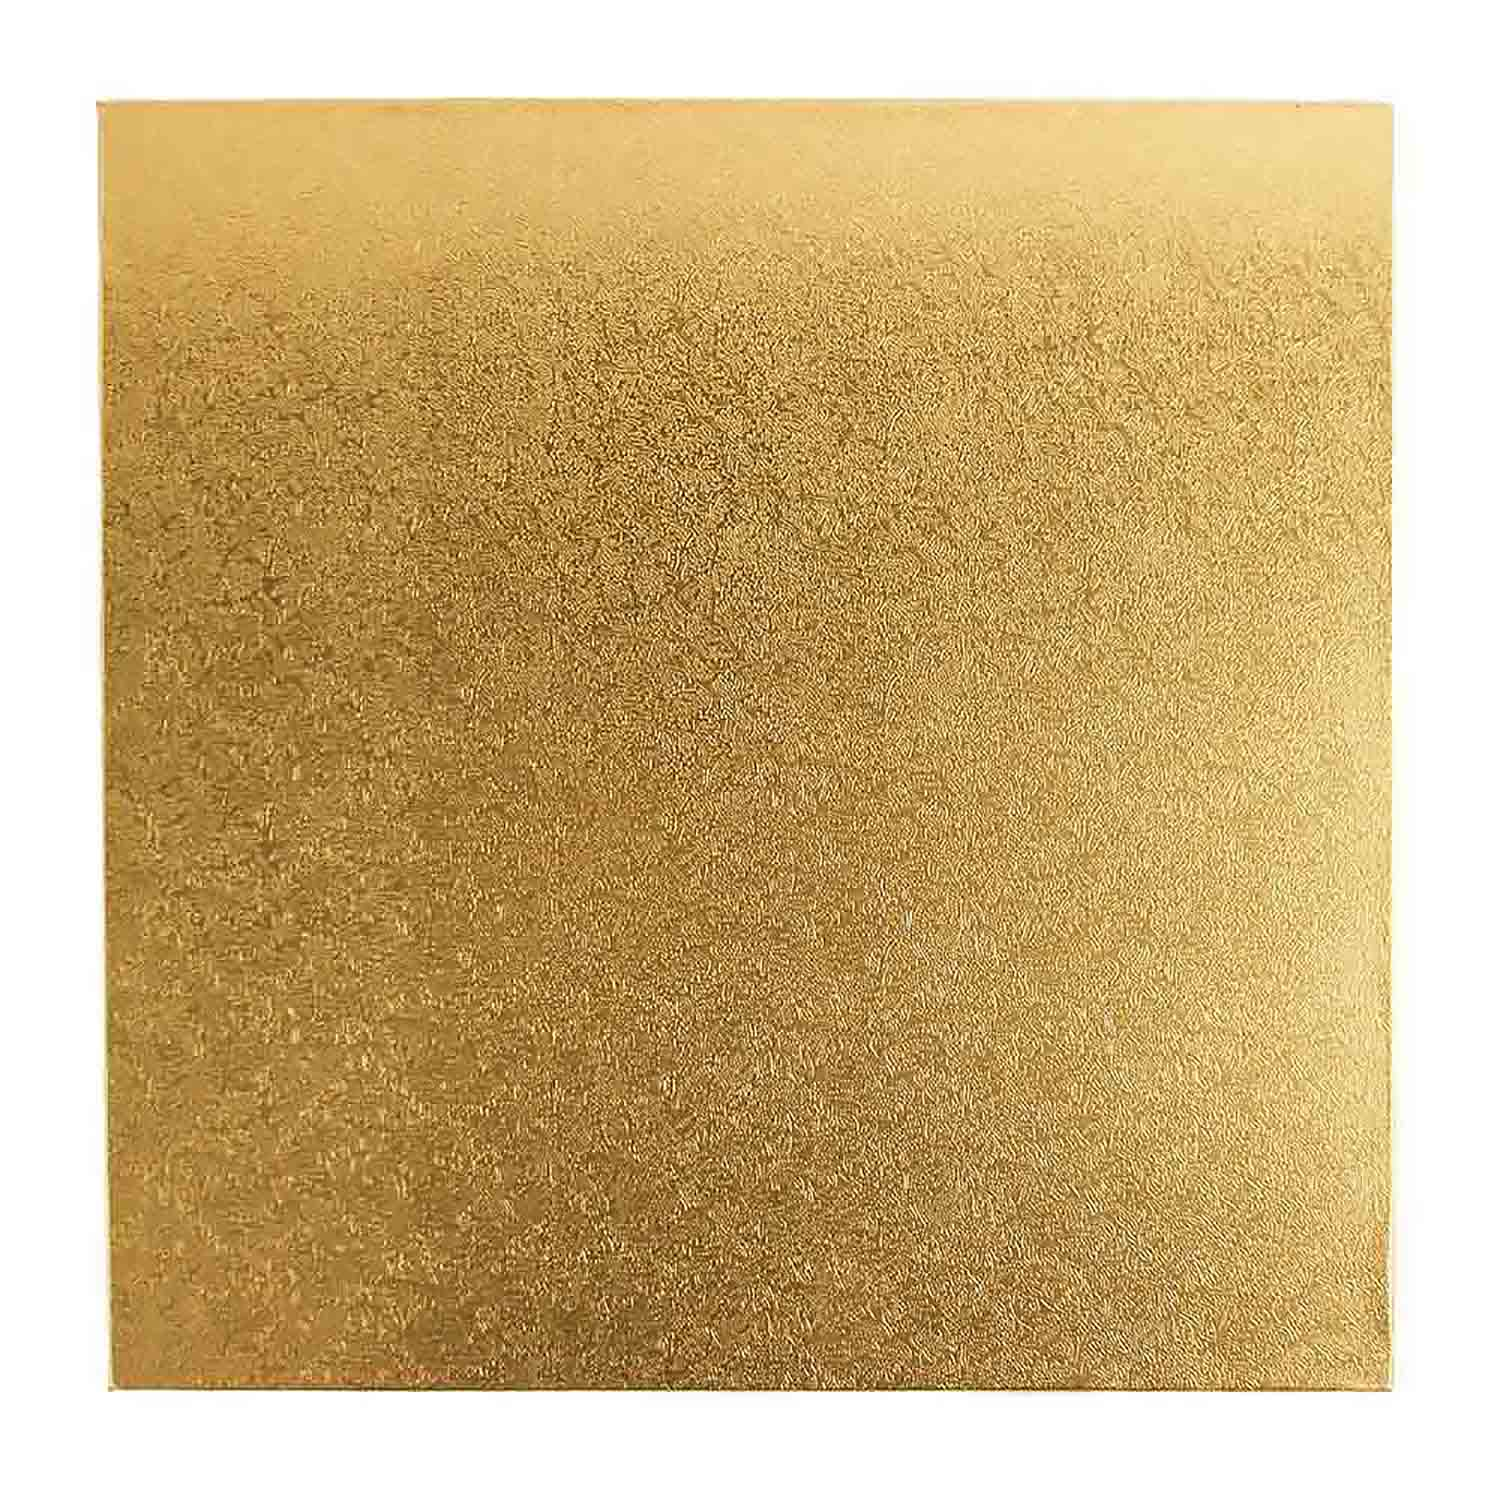 "10"" Square Gold Foil Sturdy Board"